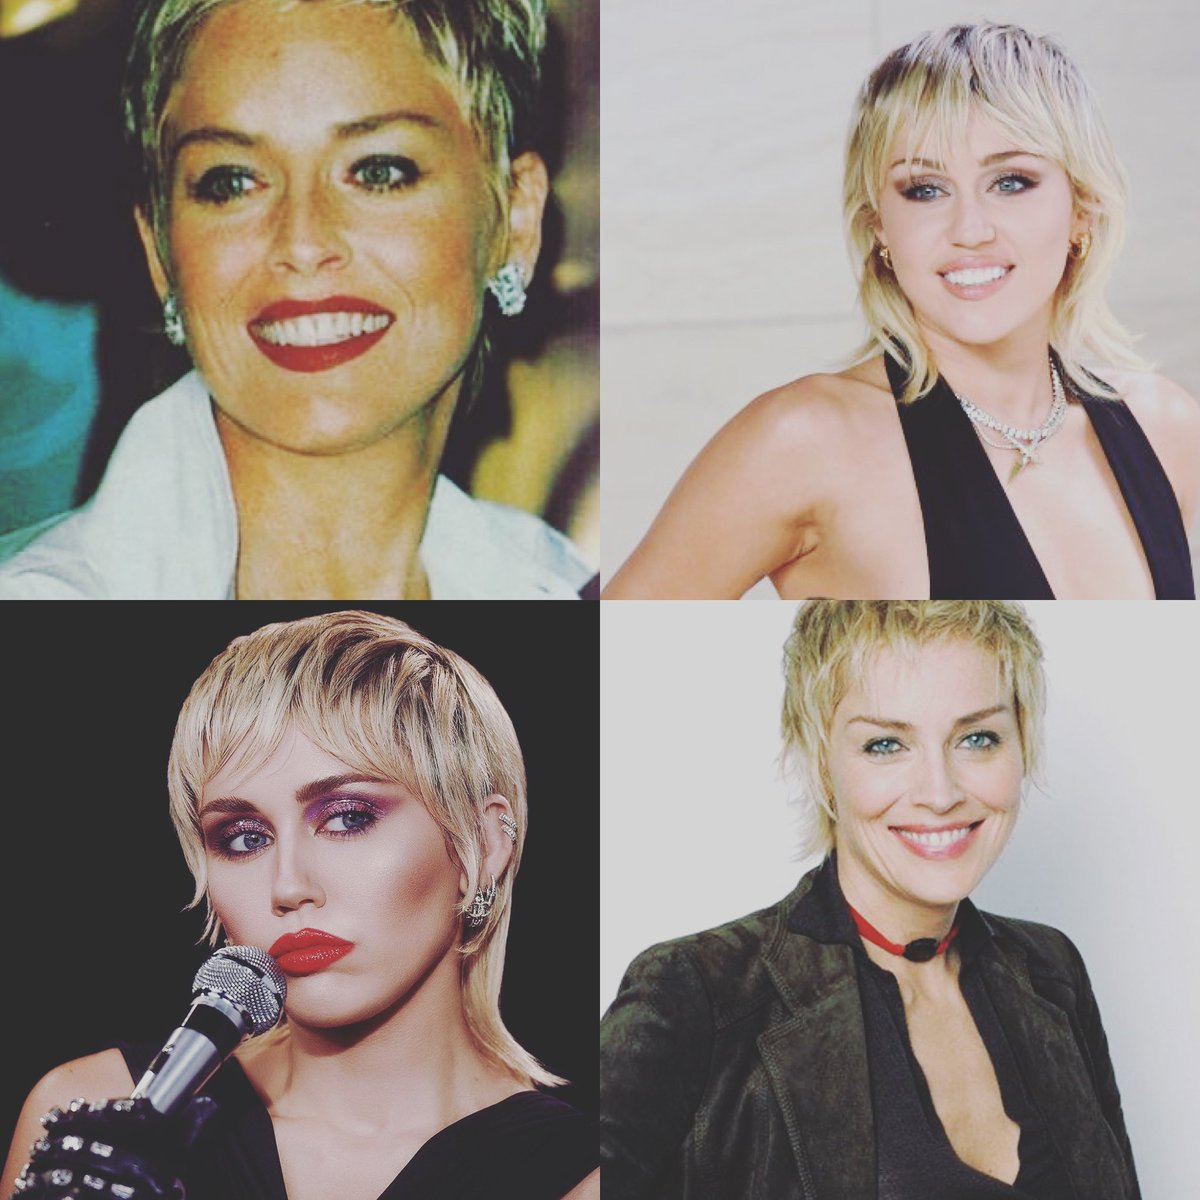 Whoa. #mileycyrus and #sharonstone ... twinsies? Or am I just punch drunk from #quarantinelife? ... I do love them both! #badass @MileyCyrus @sharonstone https://t.co/BzkcFriI1h